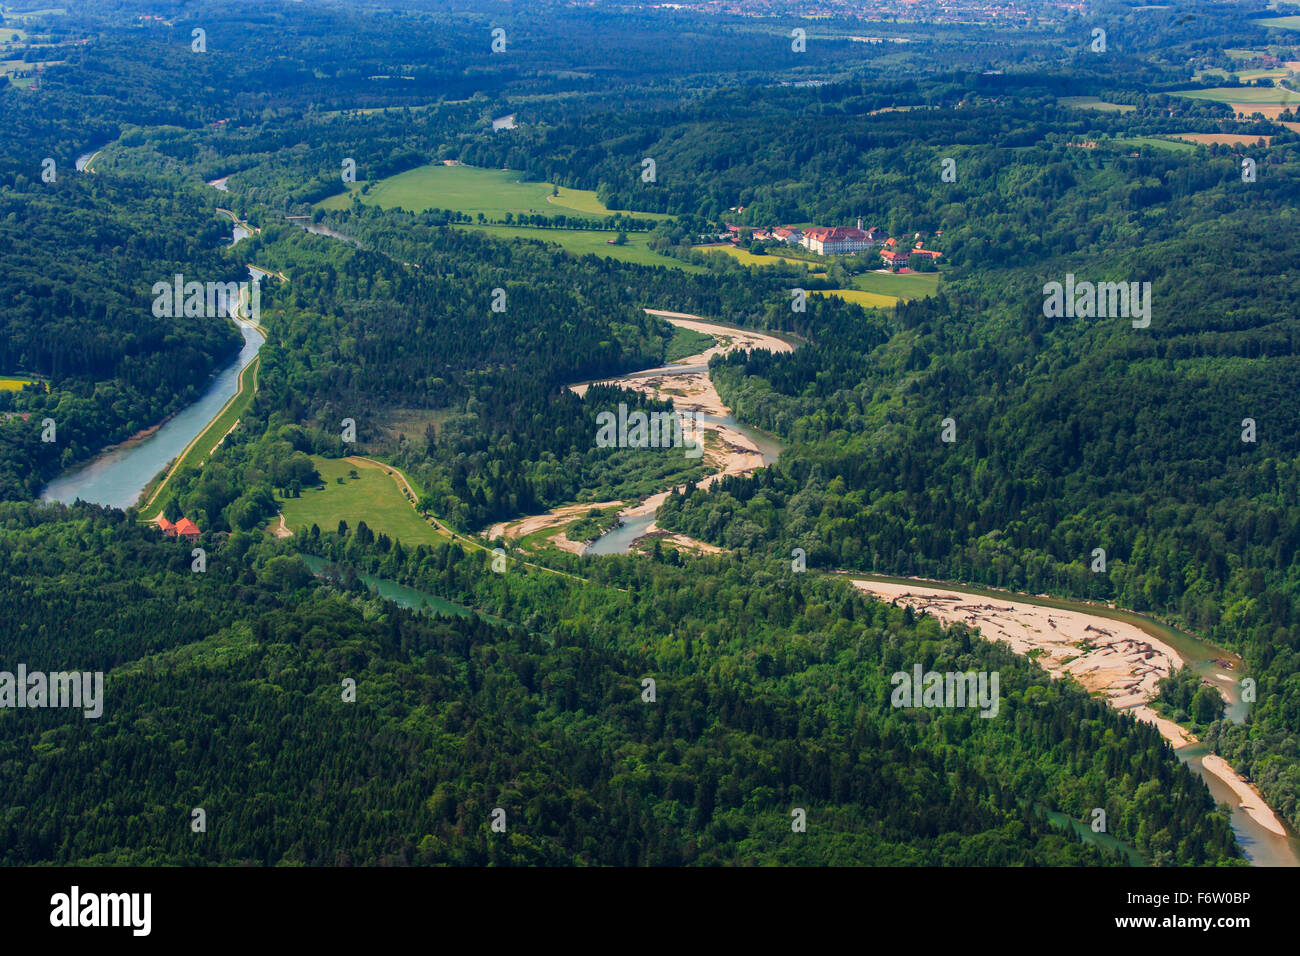 Germany, Bavaria, Aerial view of Pupplinger Au near Wolfratshausen and Schaftlarn monastery at Isar river - Stock Image